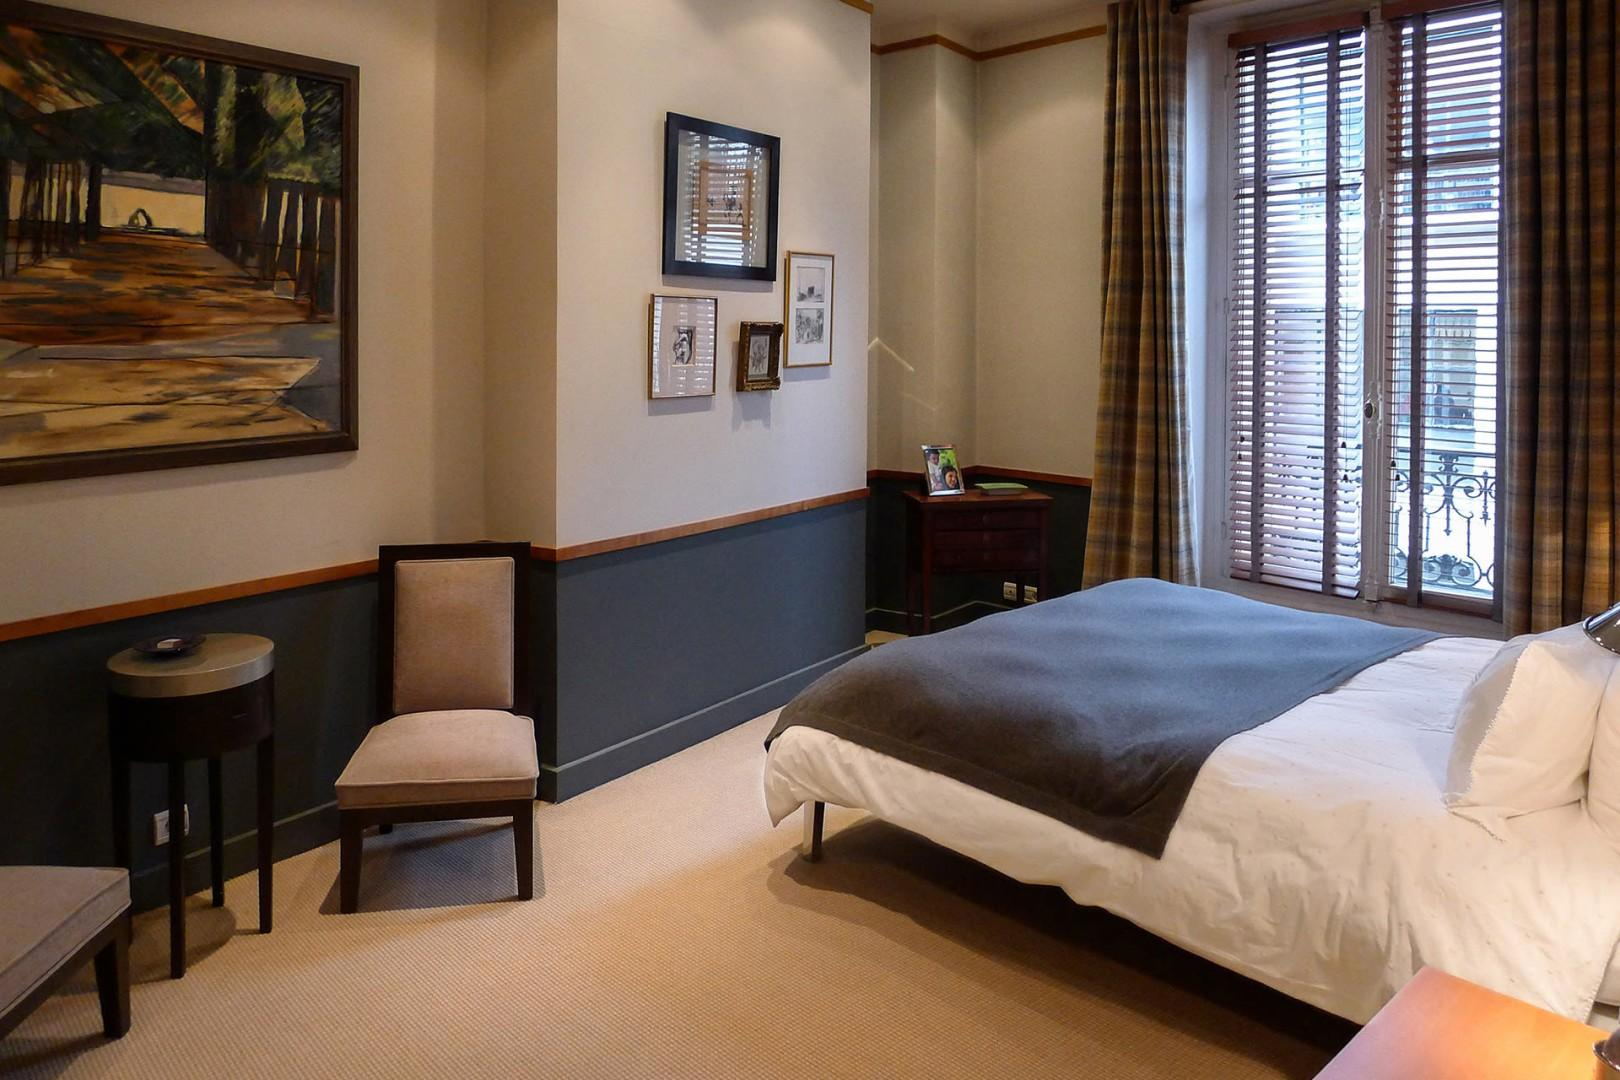 Relax in the elegant bedroom 3 with contemporary décor